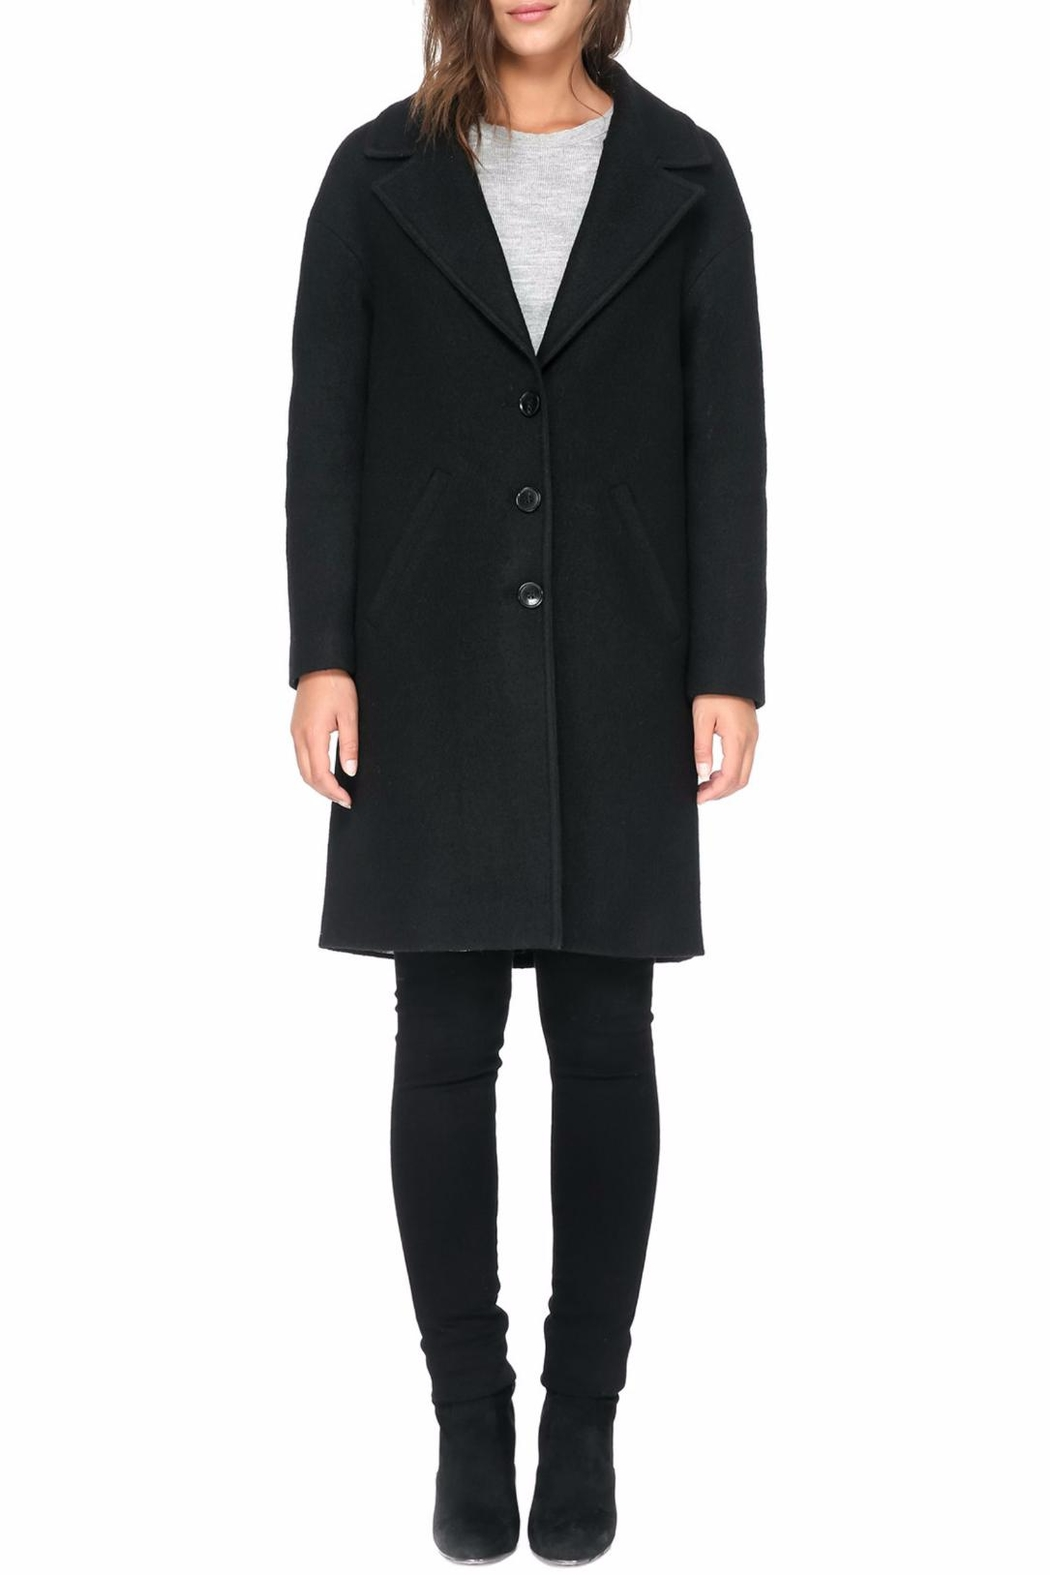 Soia & Kyo Christelle R Wool Coat - Back Cropped Image